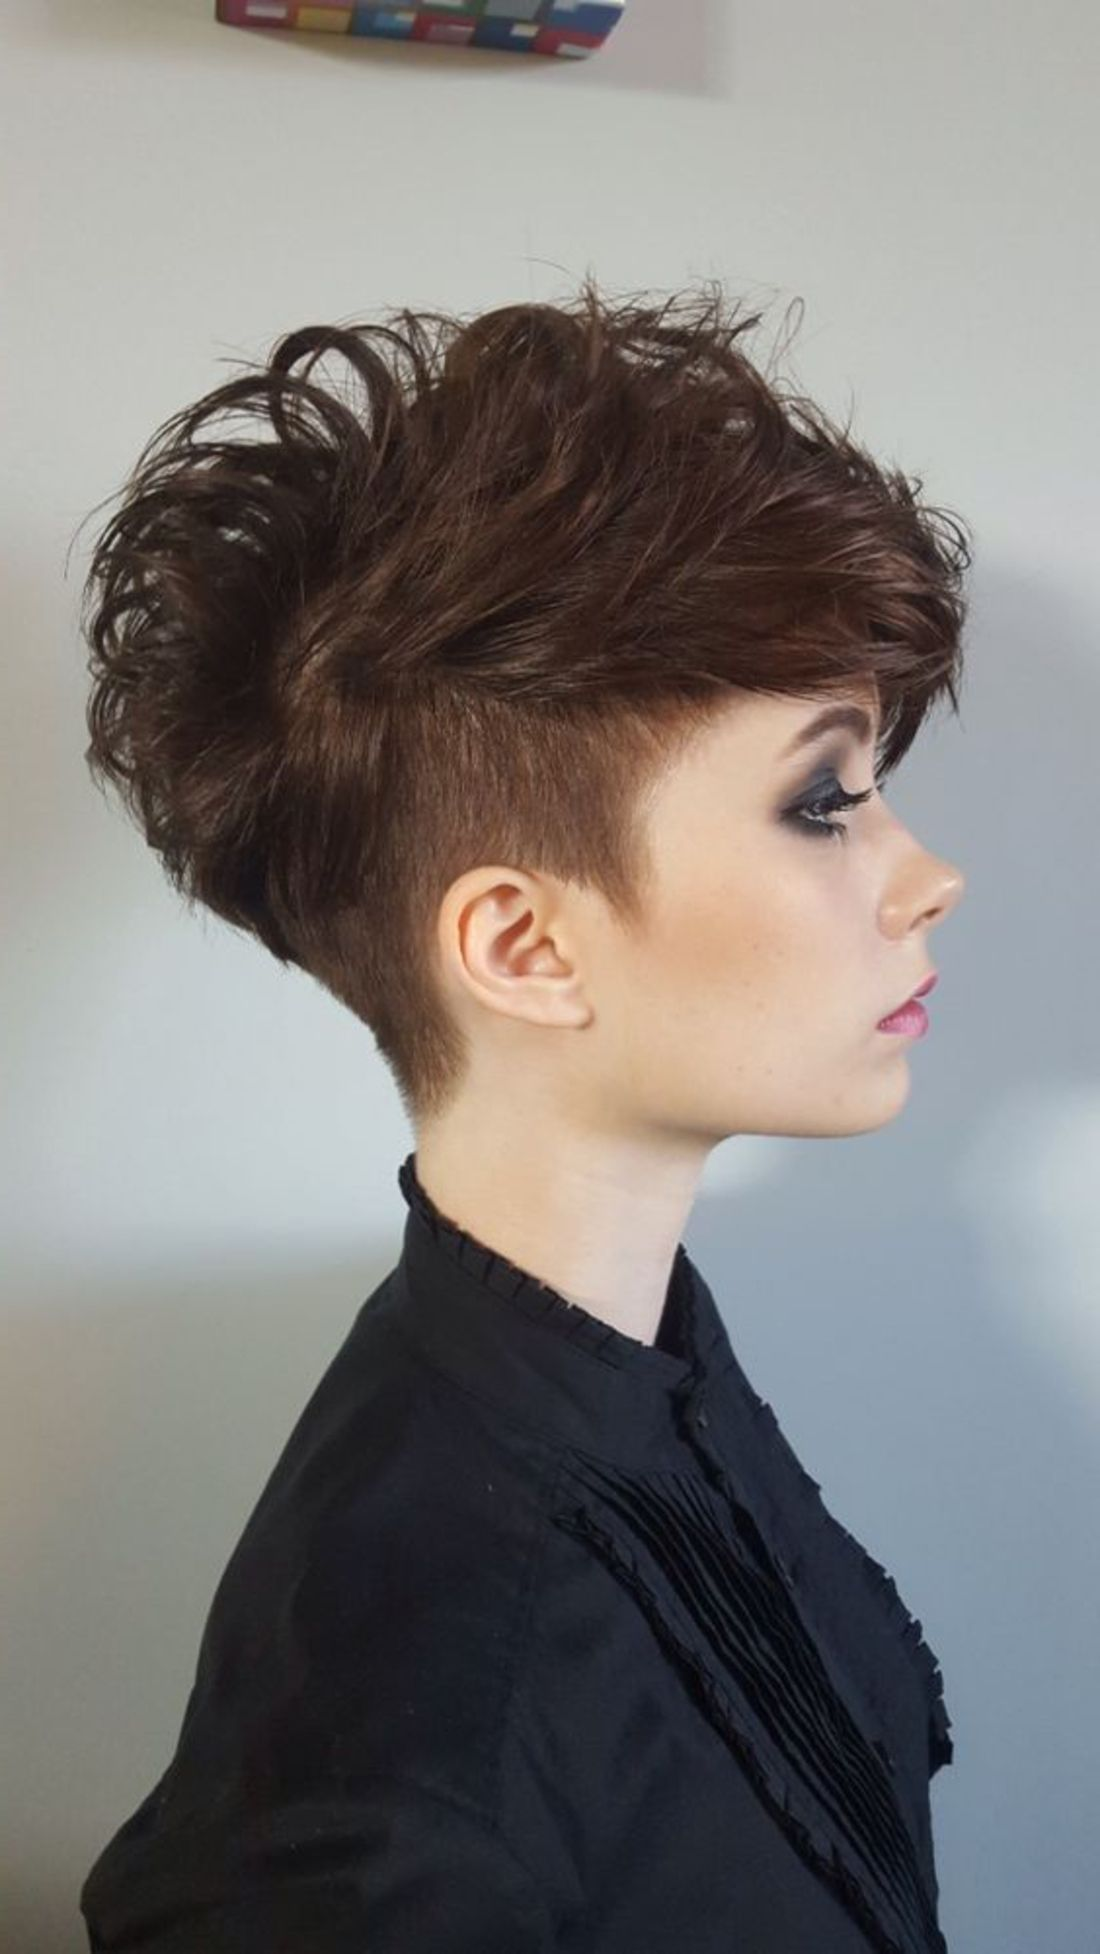 undercut frisuren hinterkopf braune haare wie dreieck rasiert lila lippenstift schwarze bluse. Black Bedroom Furniture Sets. Home Design Ideas